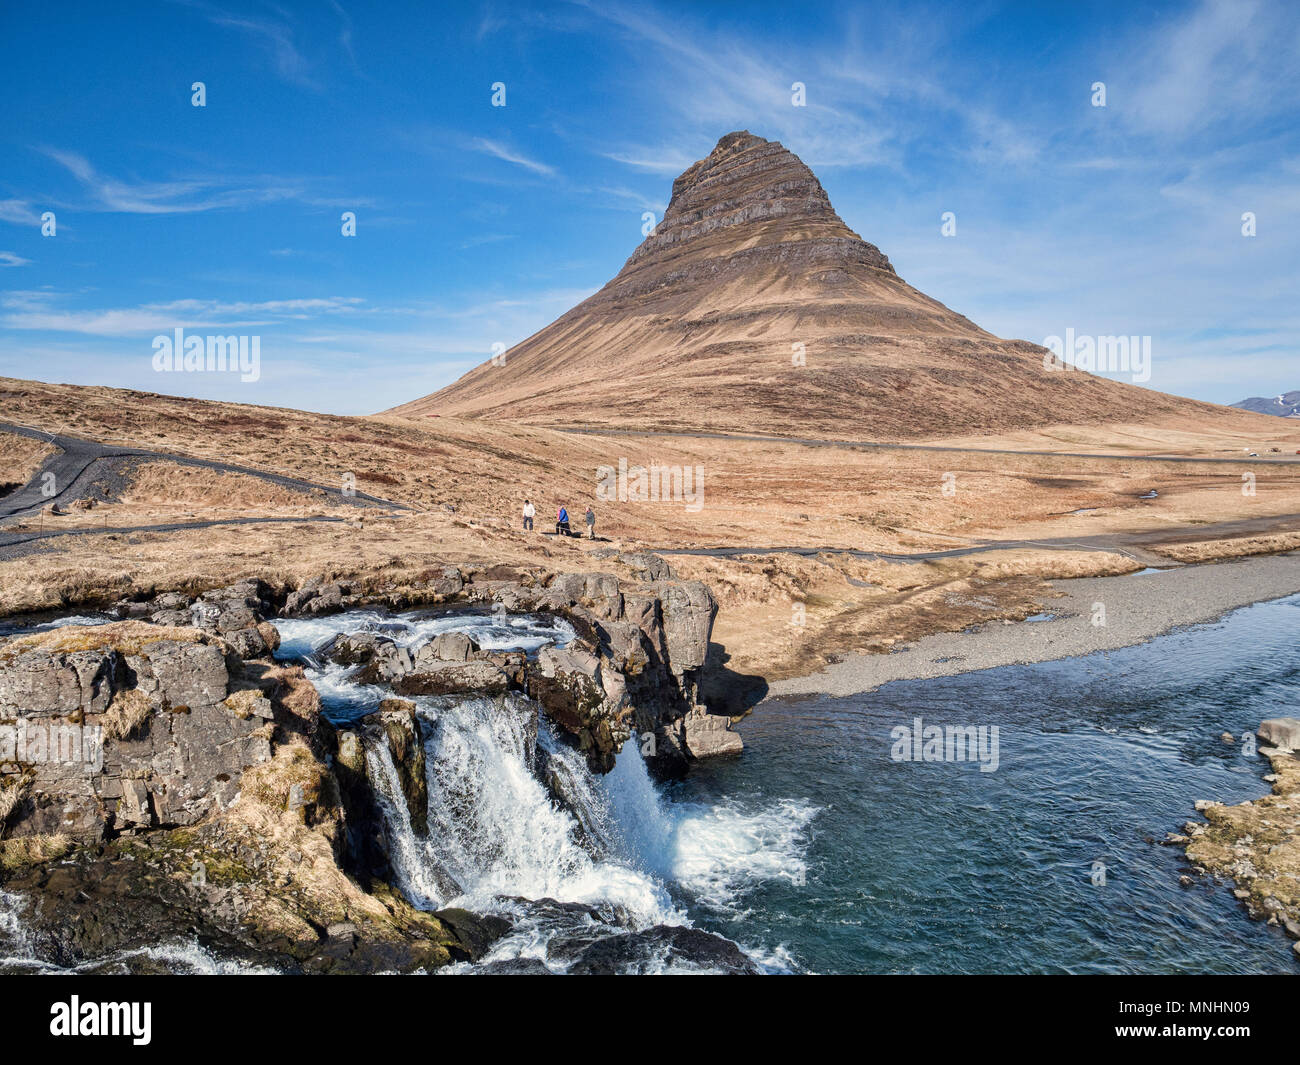 16 April 2018: Snaefellsnes Peninsula, West Iceland - The mountain Kirkjufell and waterfall Kirkjufellsfoss on the Snaefellsnes Peninsula, Iceland... - Stock Image